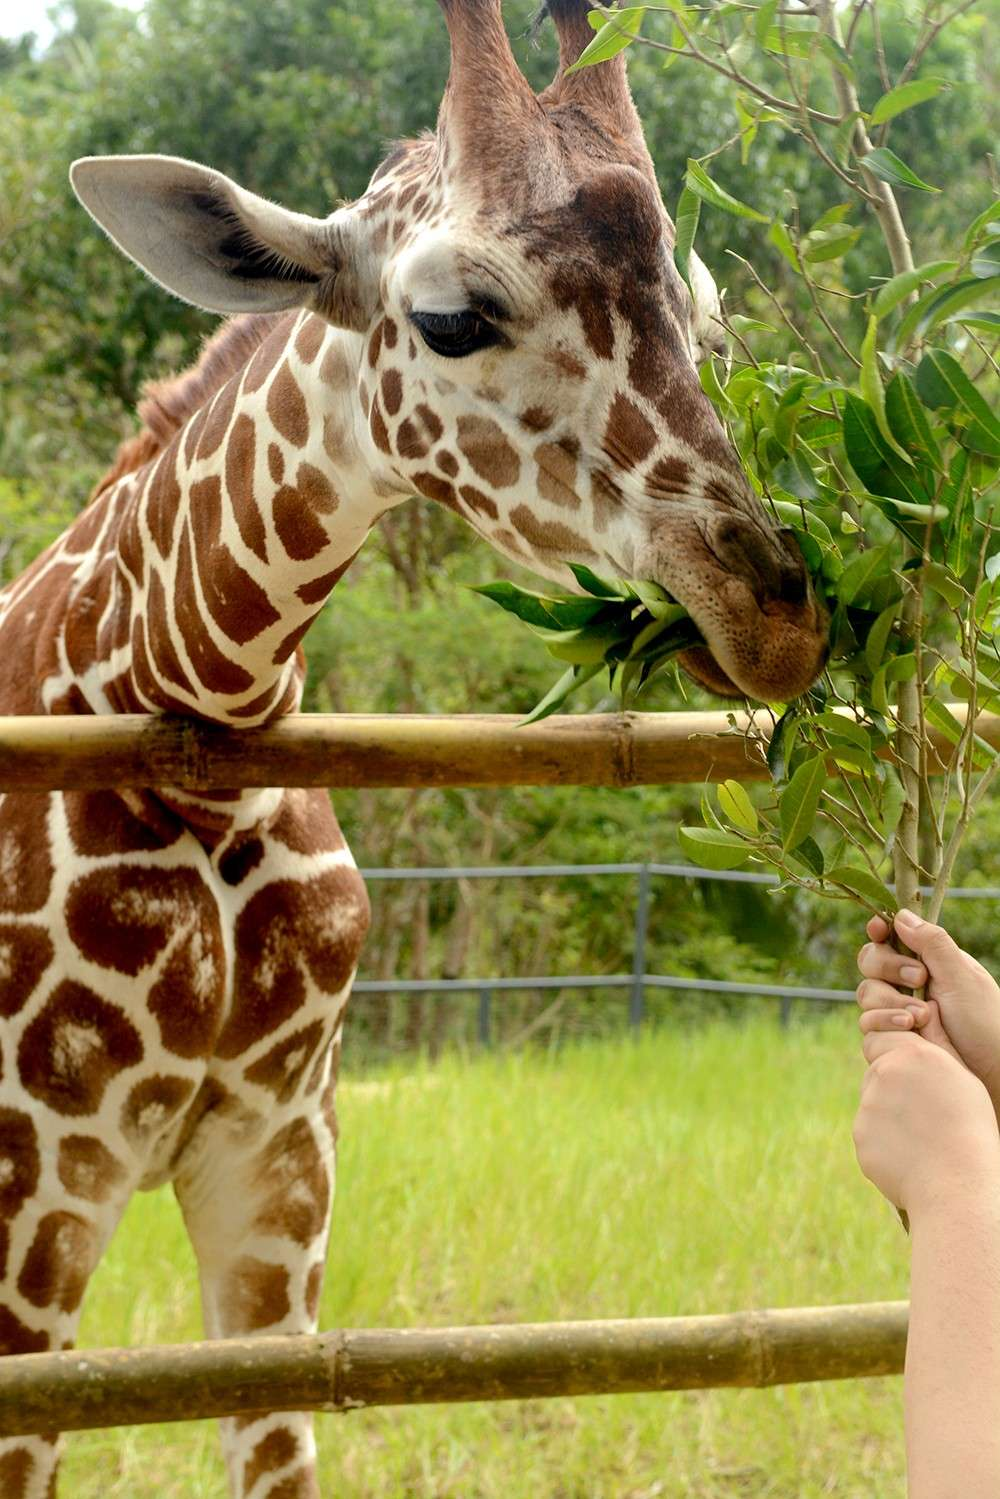 OTHER THINGS TO SEE. Aside from Cebu's famous beaches, tourists looking for other experiences can also take a trip to Carmen town and be up close with animals at the Cebu Safari and Adventure Park. (SunStar file)